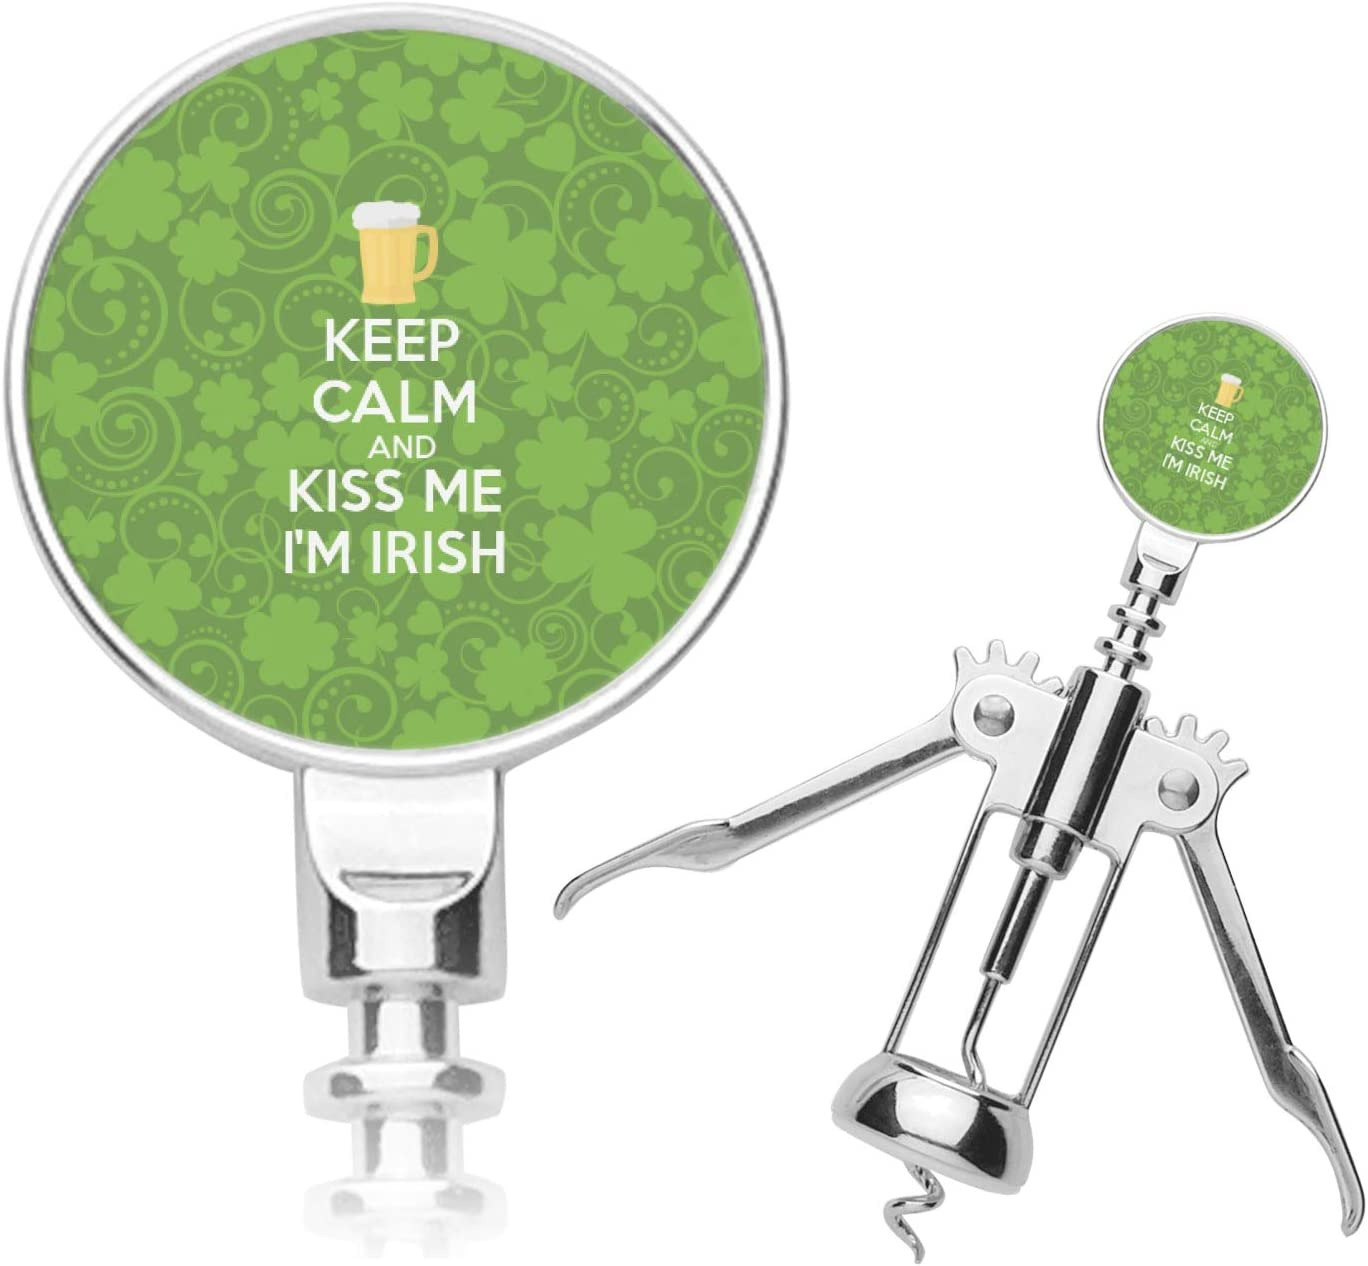 Kiss Me I'm Corkscrew Spasm price 70% OFF Outlet Irish Personalized